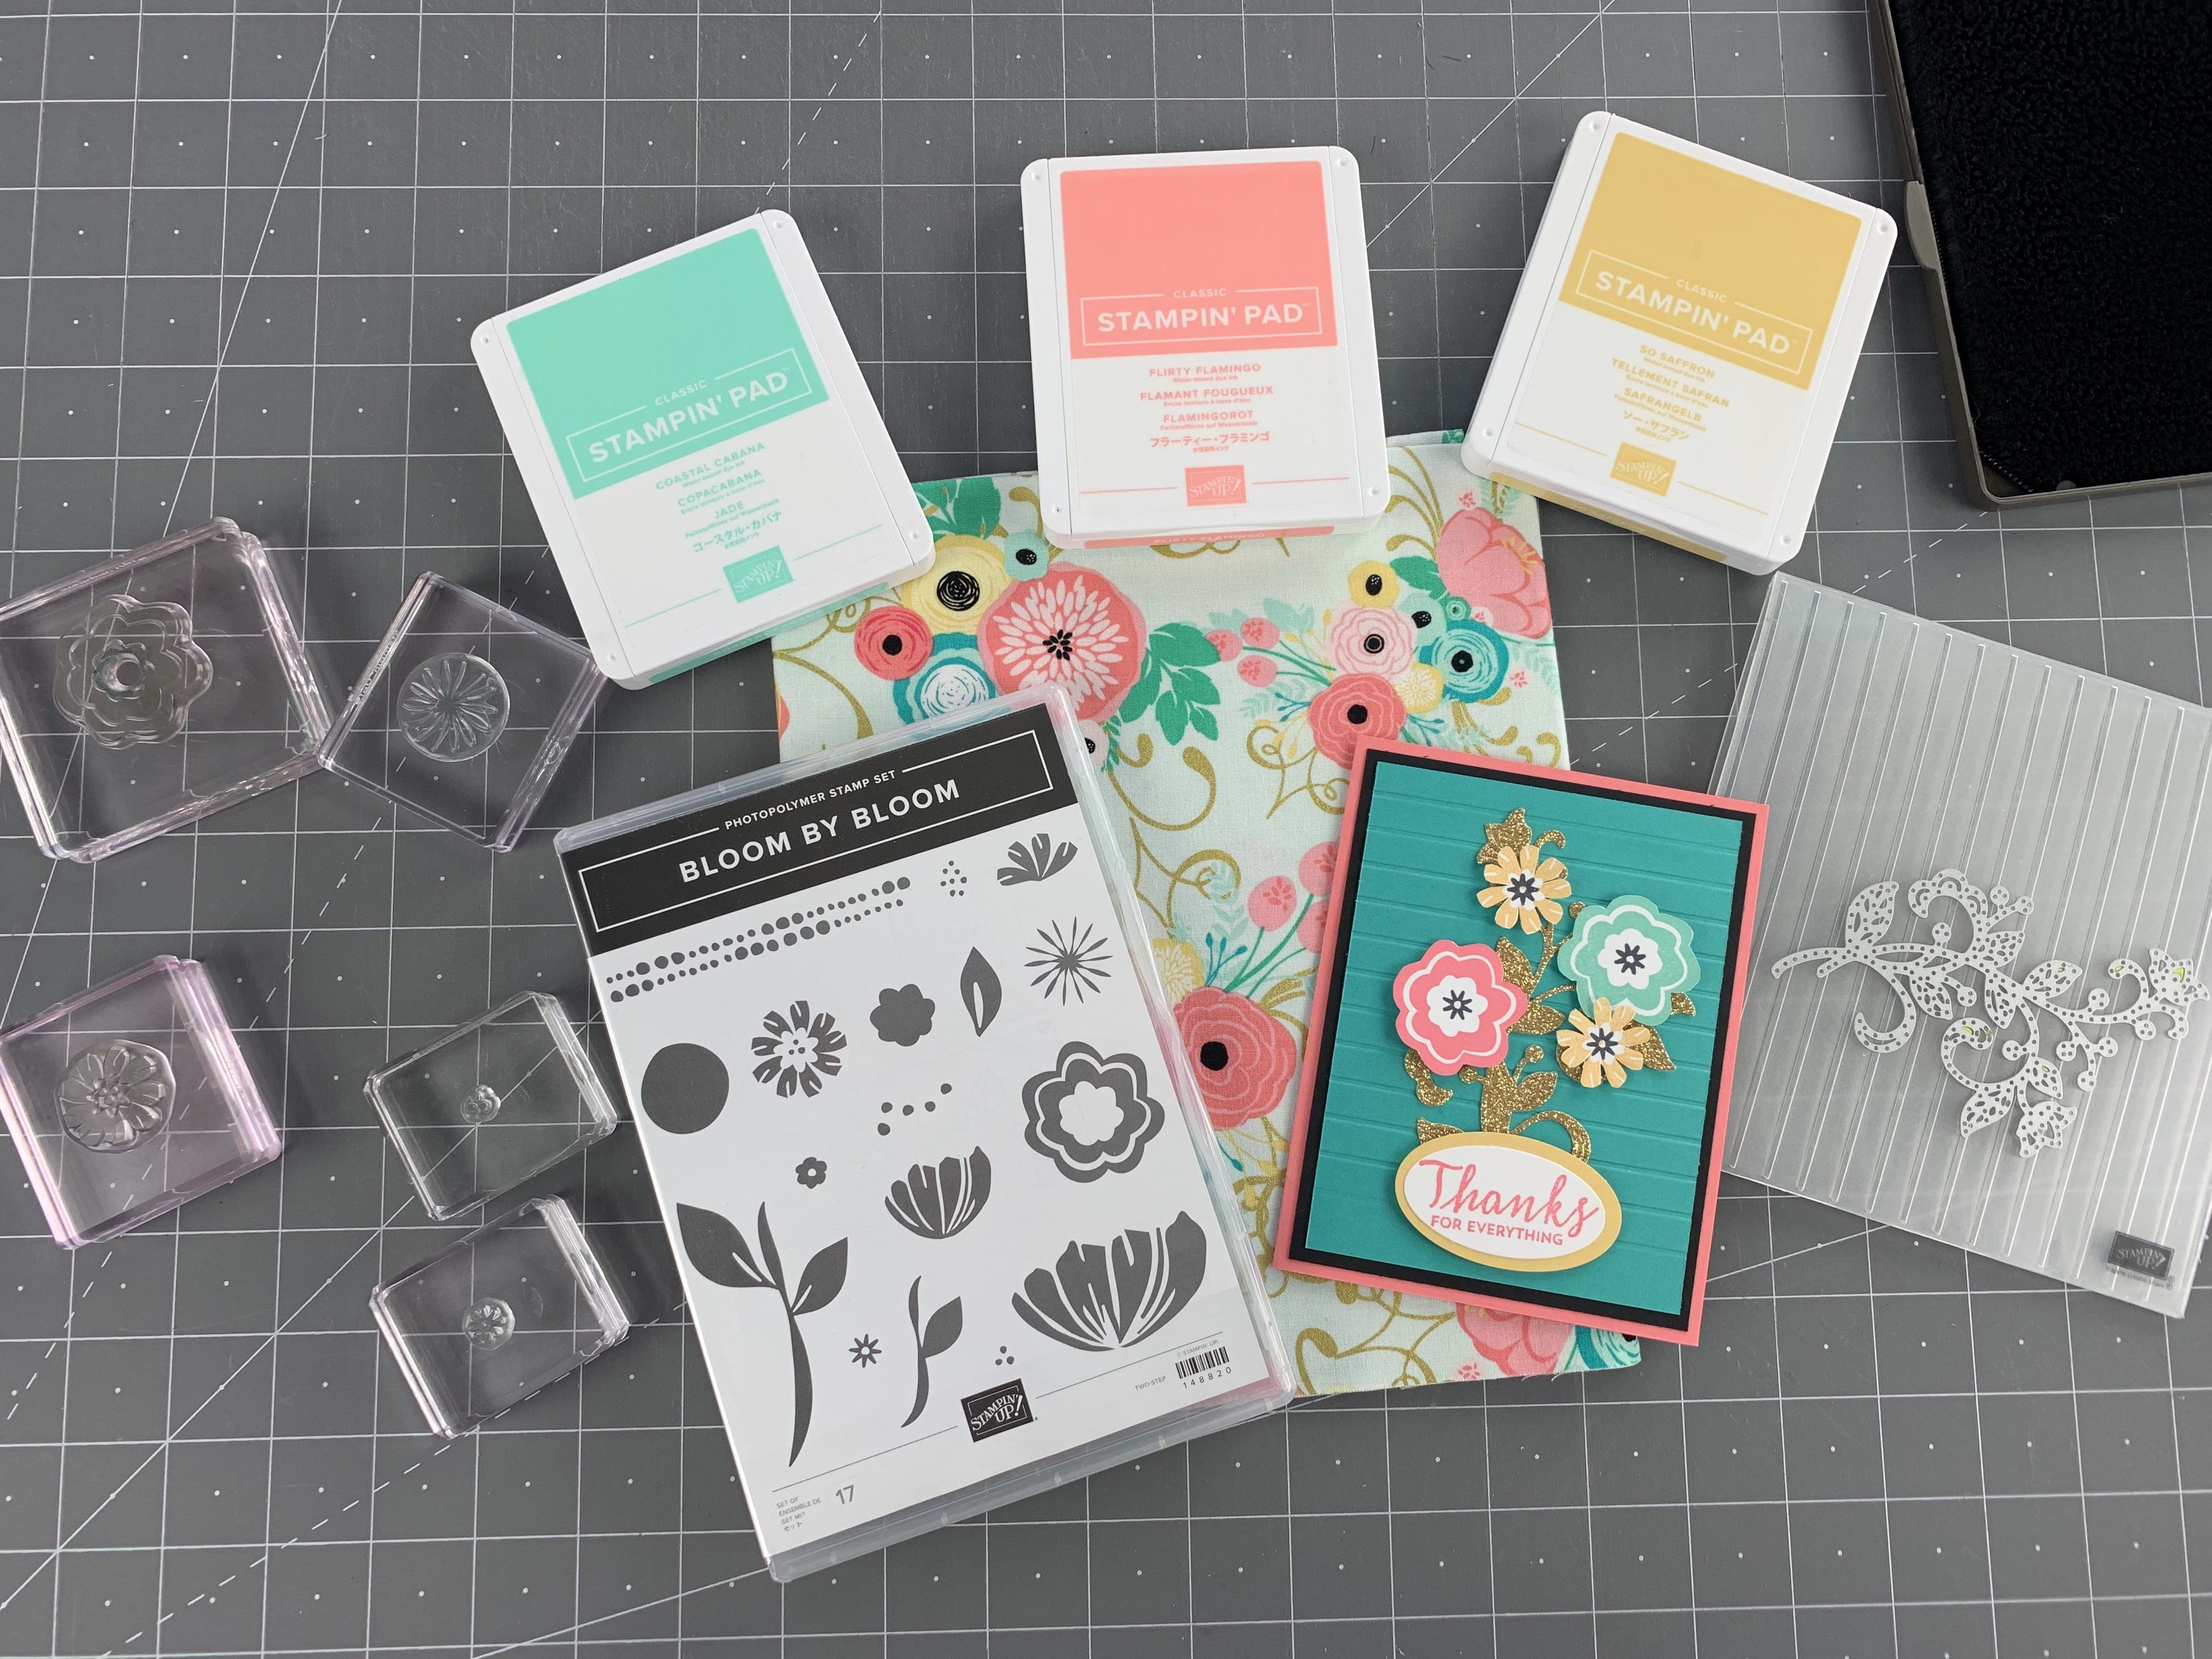 {VIDEO}Episode 690 – Stampin' Up! Bloom by Bloom / Fabric Inspiration & Week 1 of Promotion